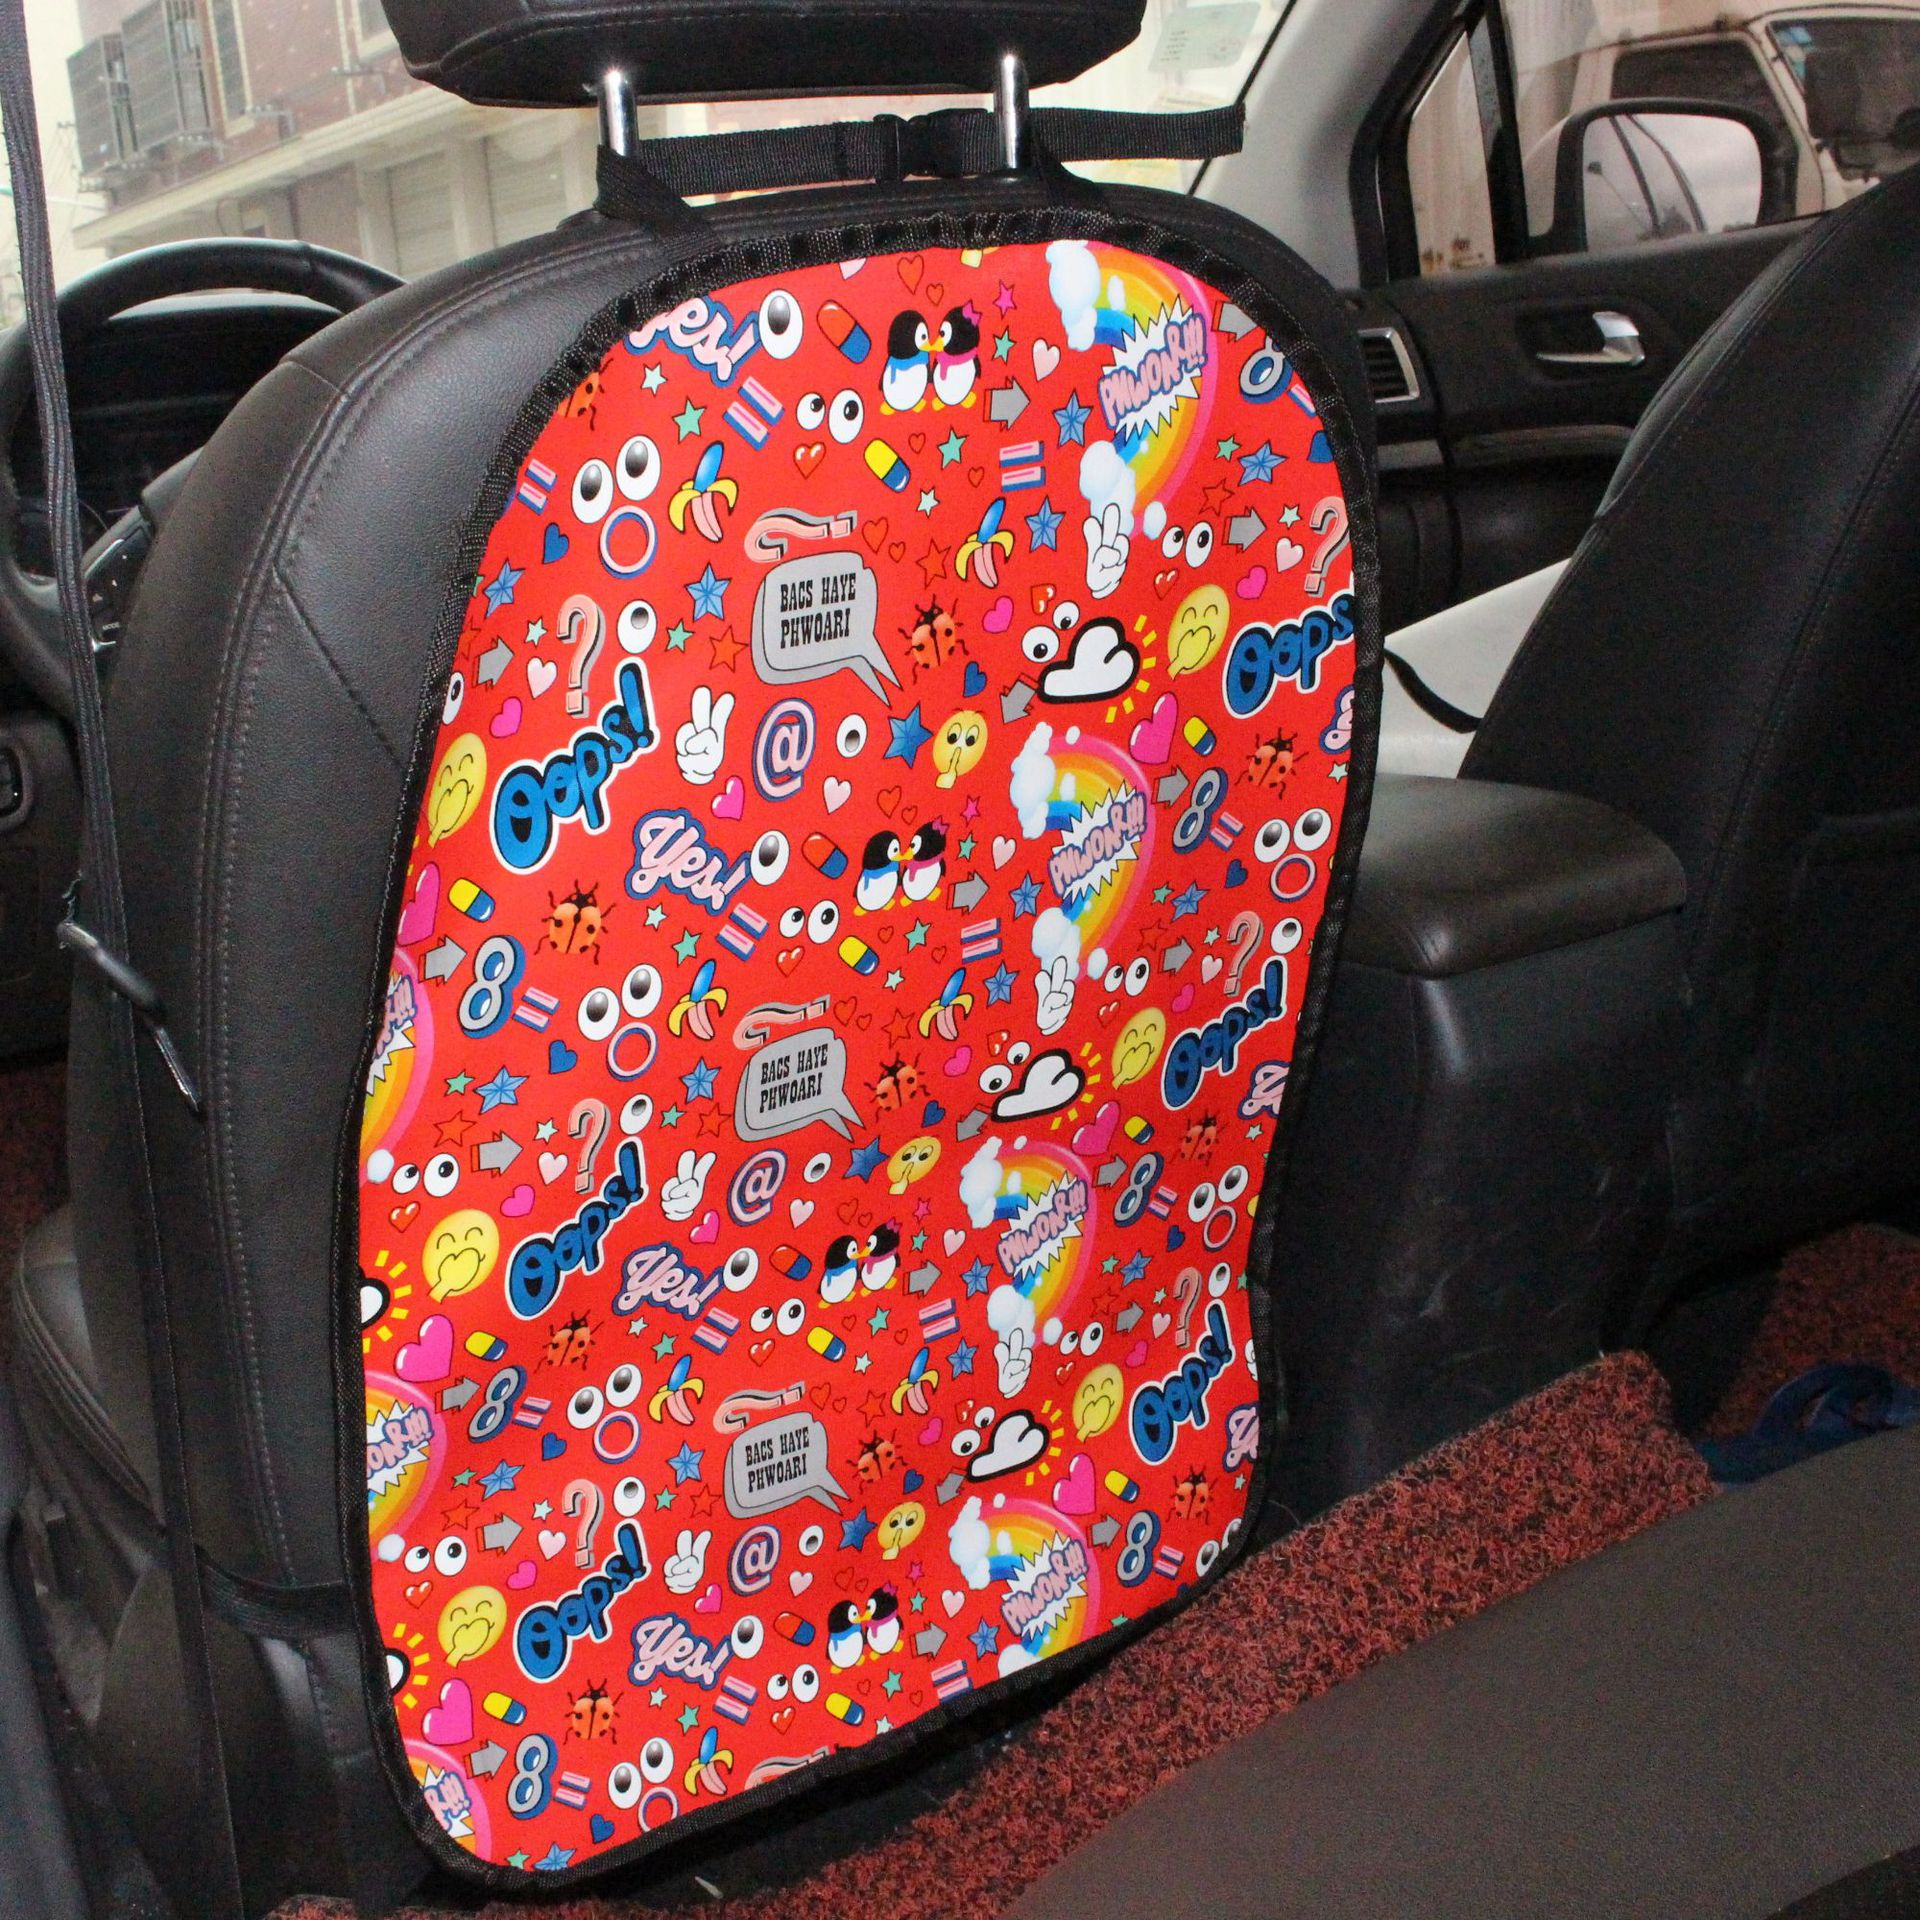 1Pc Car Auto Care Seat Back Protector Cover for Baby Child Kick Mat Protect